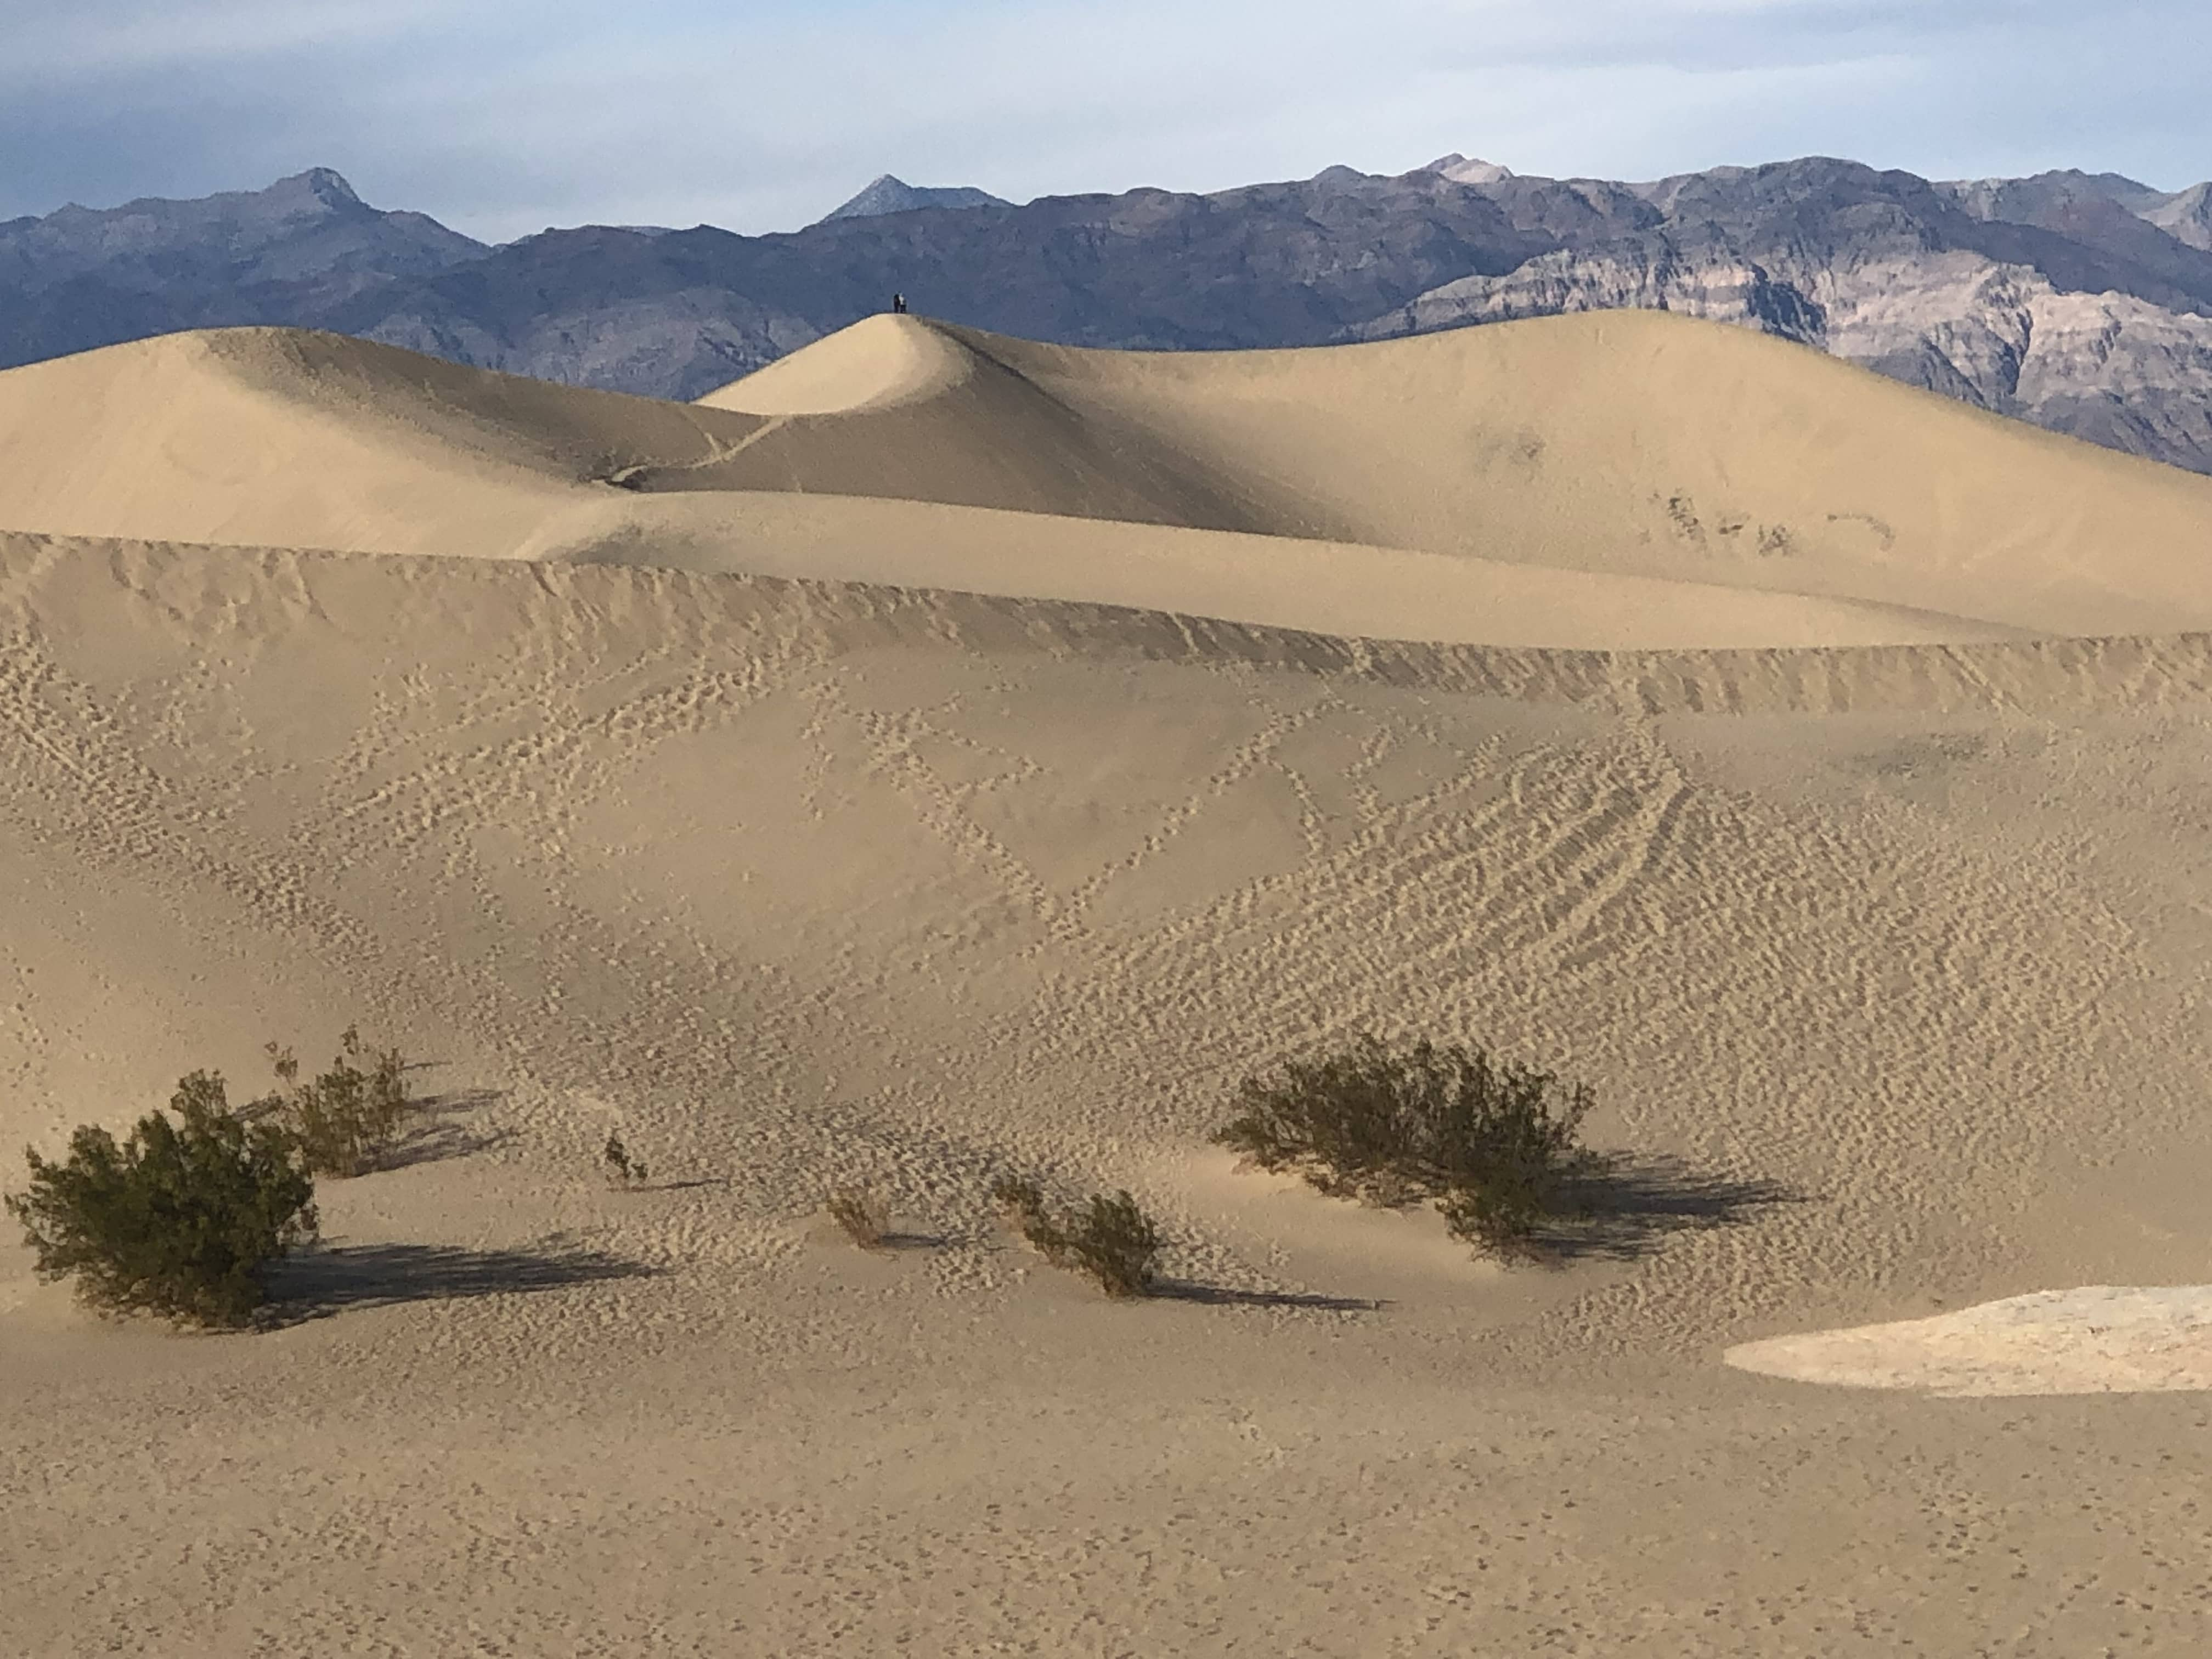 We didn't climb up to the highest dune in Mesquite Flat Sand Dunes, but some people did. Can you see them on the way to the top of the highest dune?